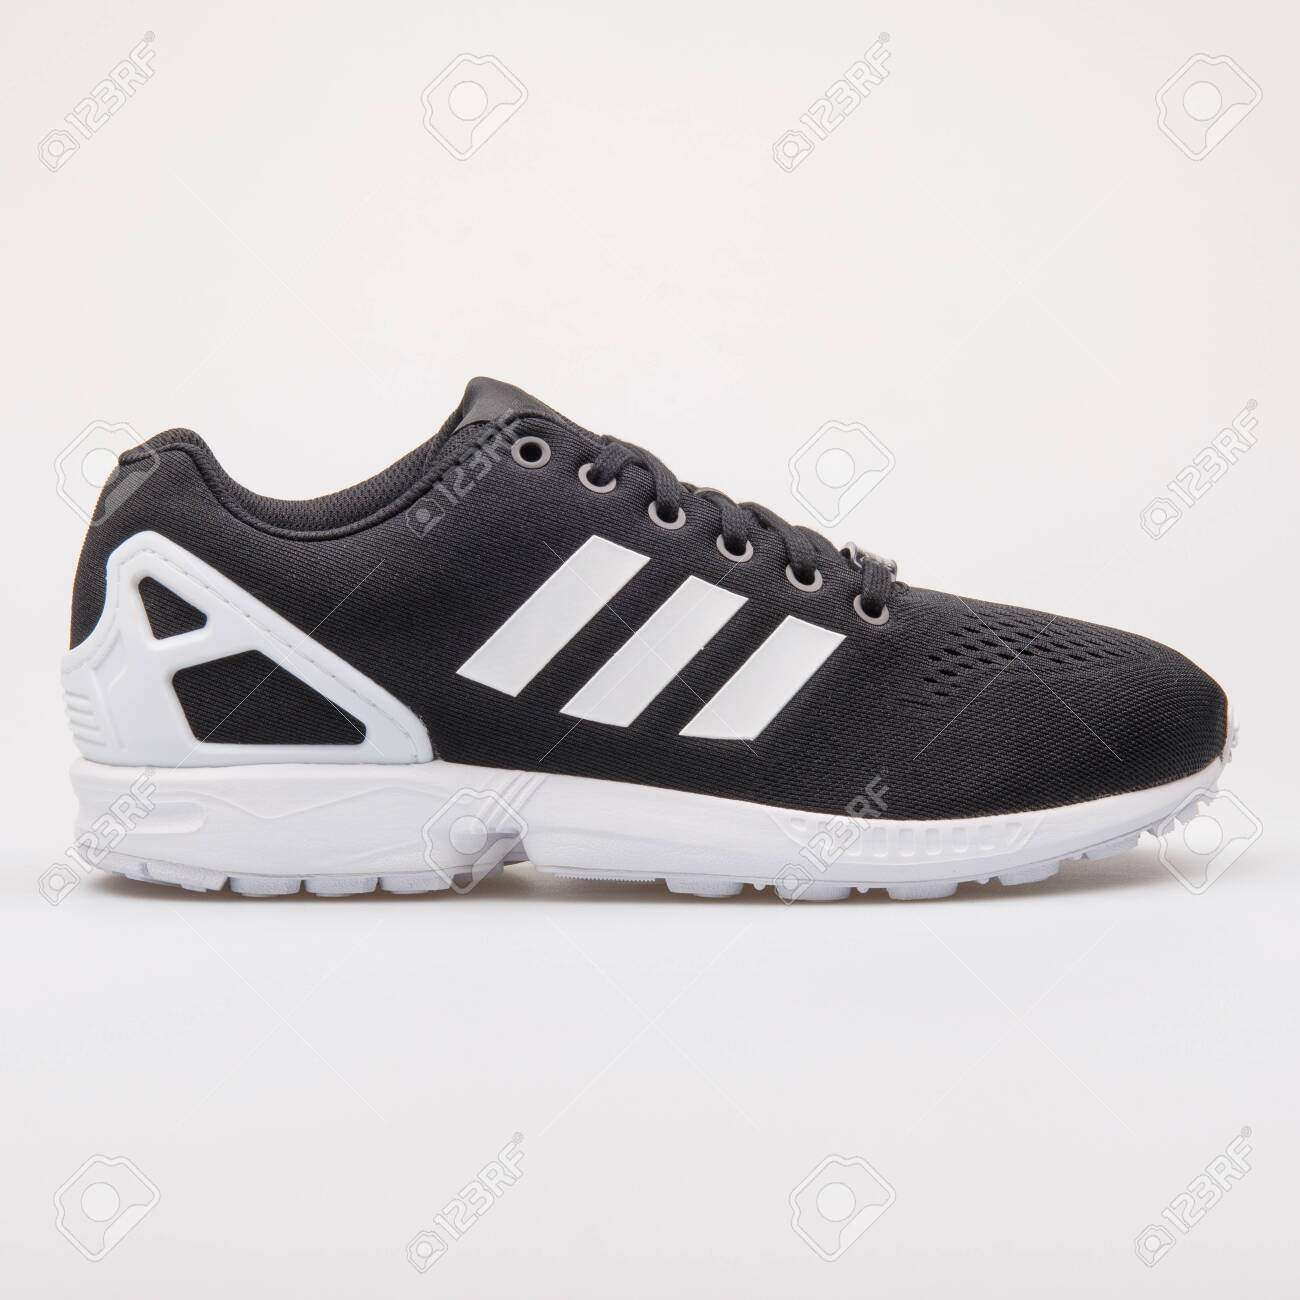 Adidas ZX Flux EM Black And.. Stock